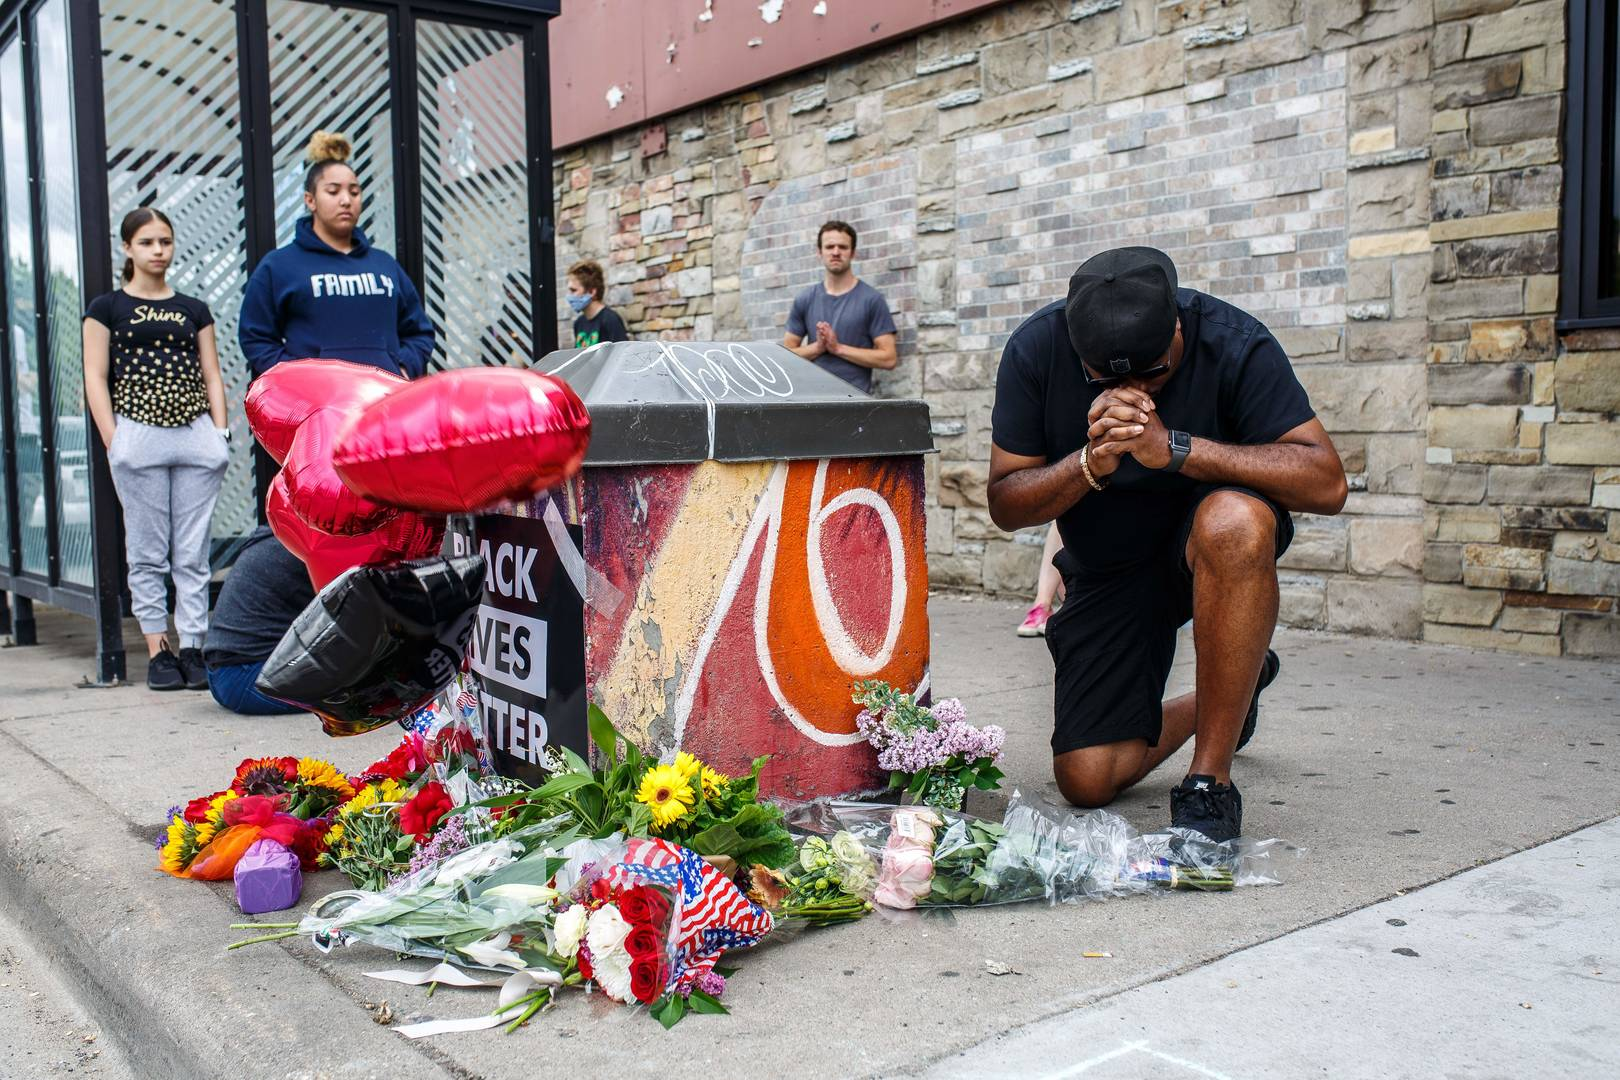 Minneapolis Police Officers Involved In Death Of George Floyd Fired